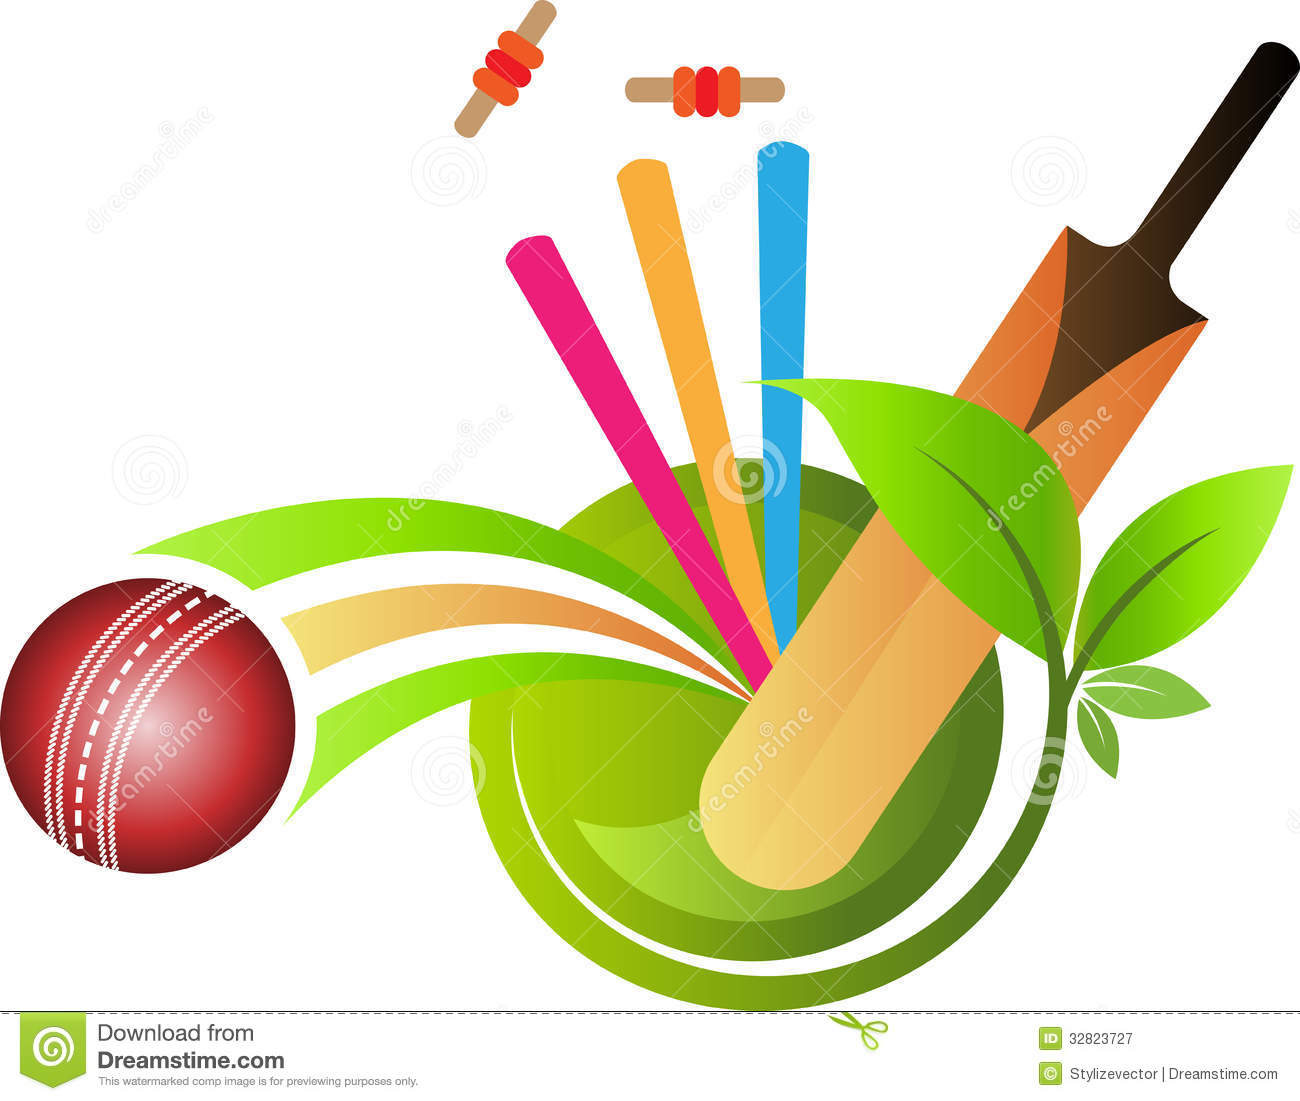 CRICKET IS MY LIFE with Images 991350041 Storify